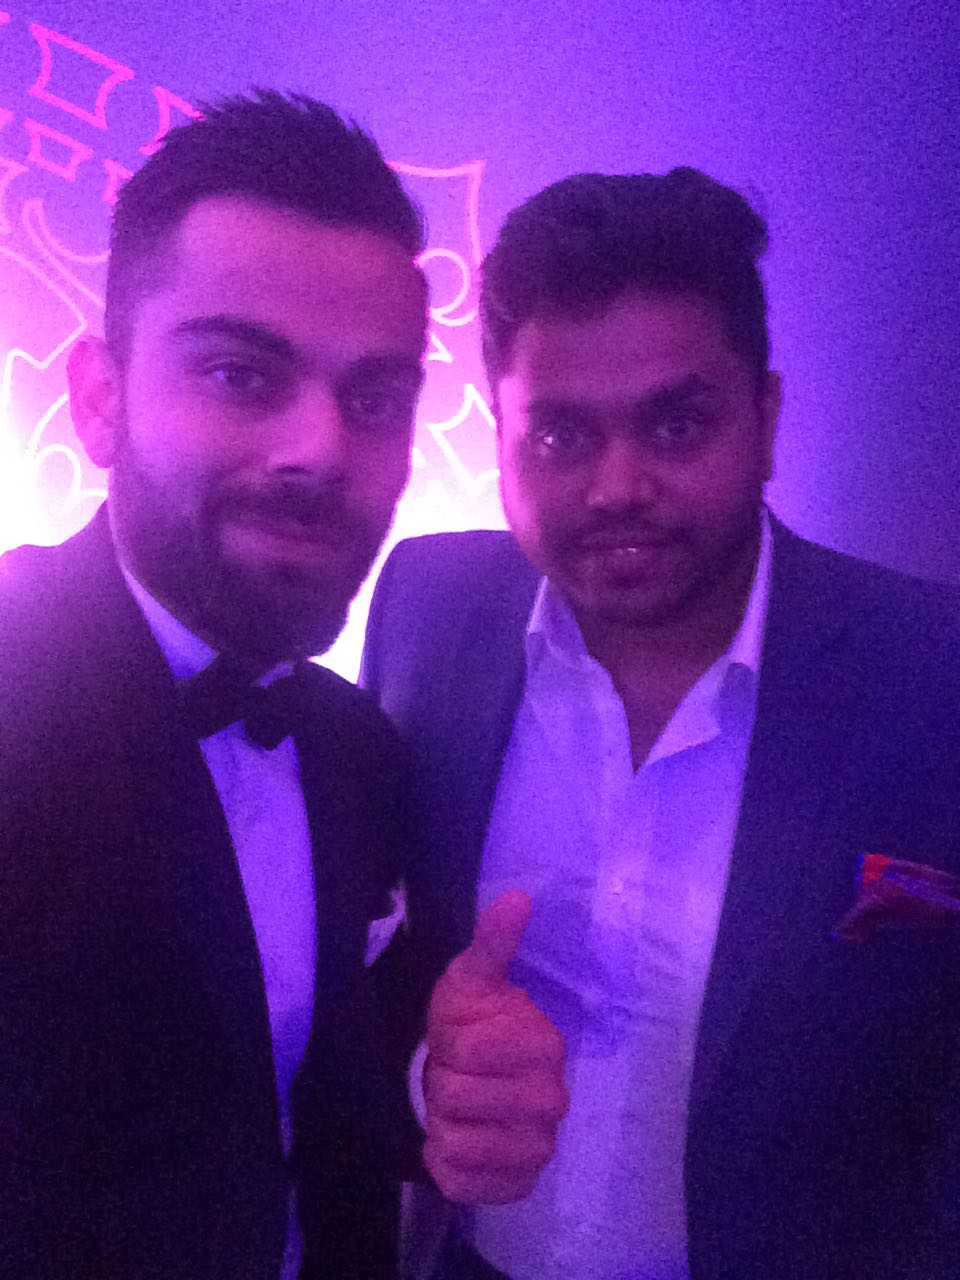 Thank you Amit Bhagchandka for coming to the HAC to support our Charity Ball last night. https://t.co/BqHmtNe3KK